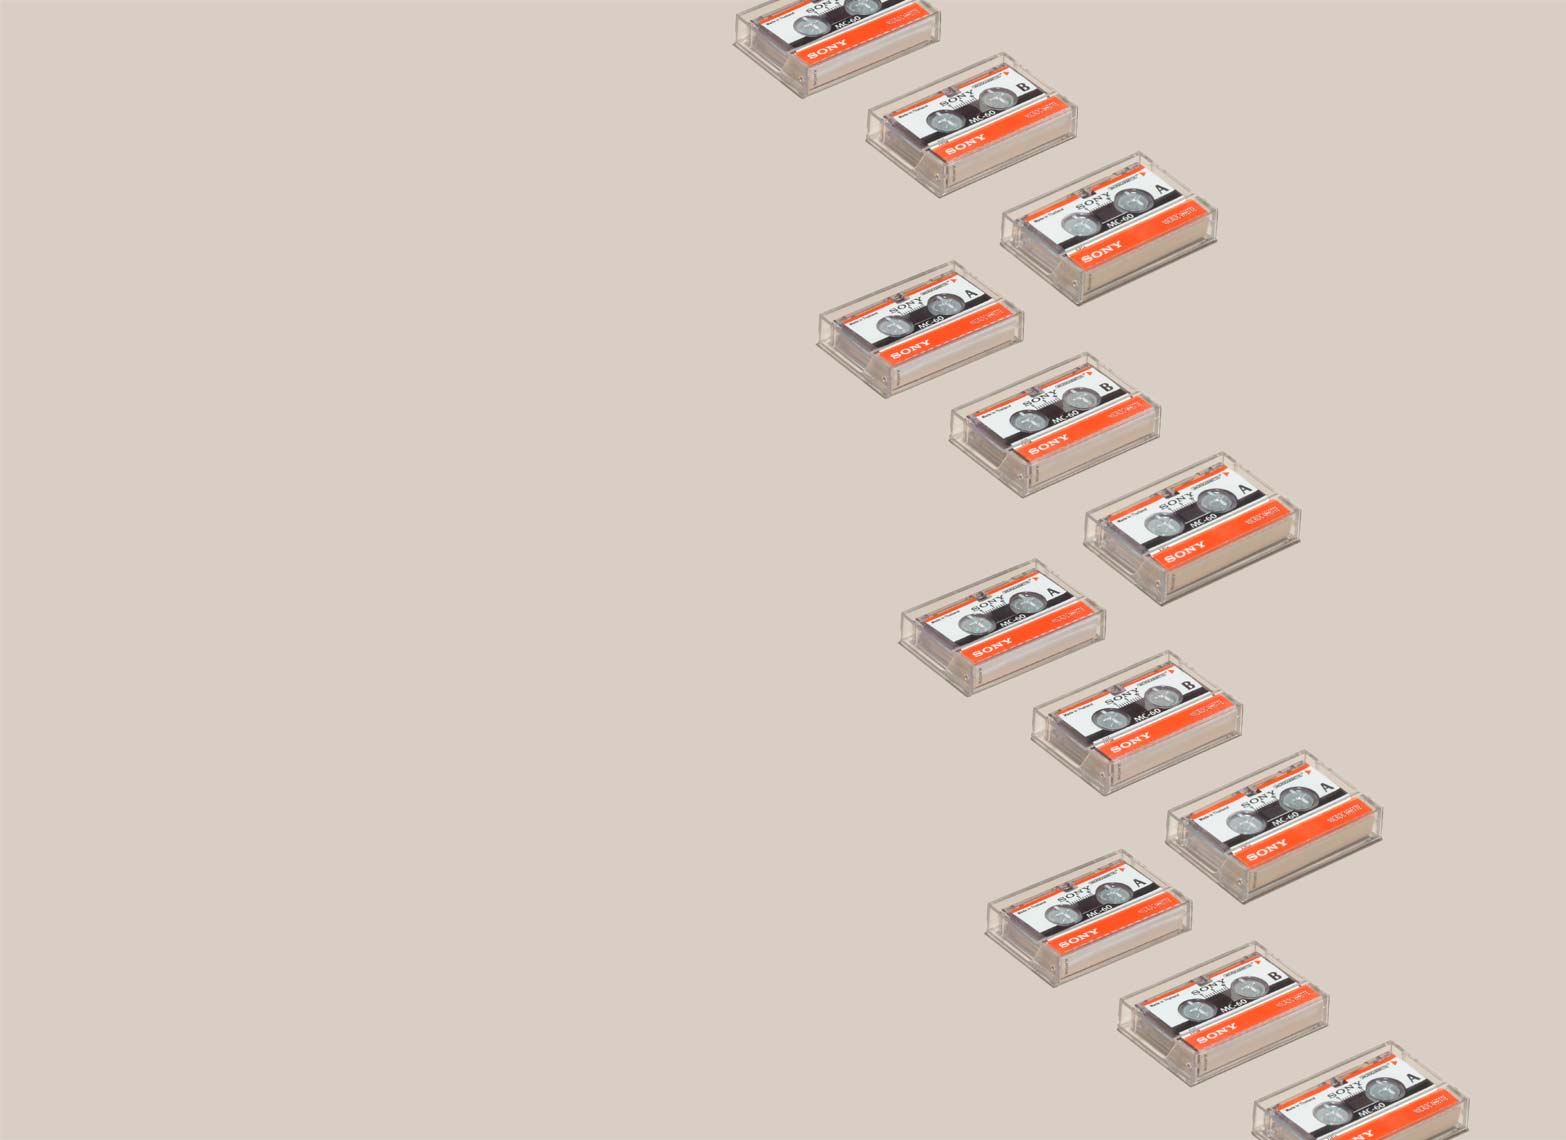 micro cassette tapes from answering machines